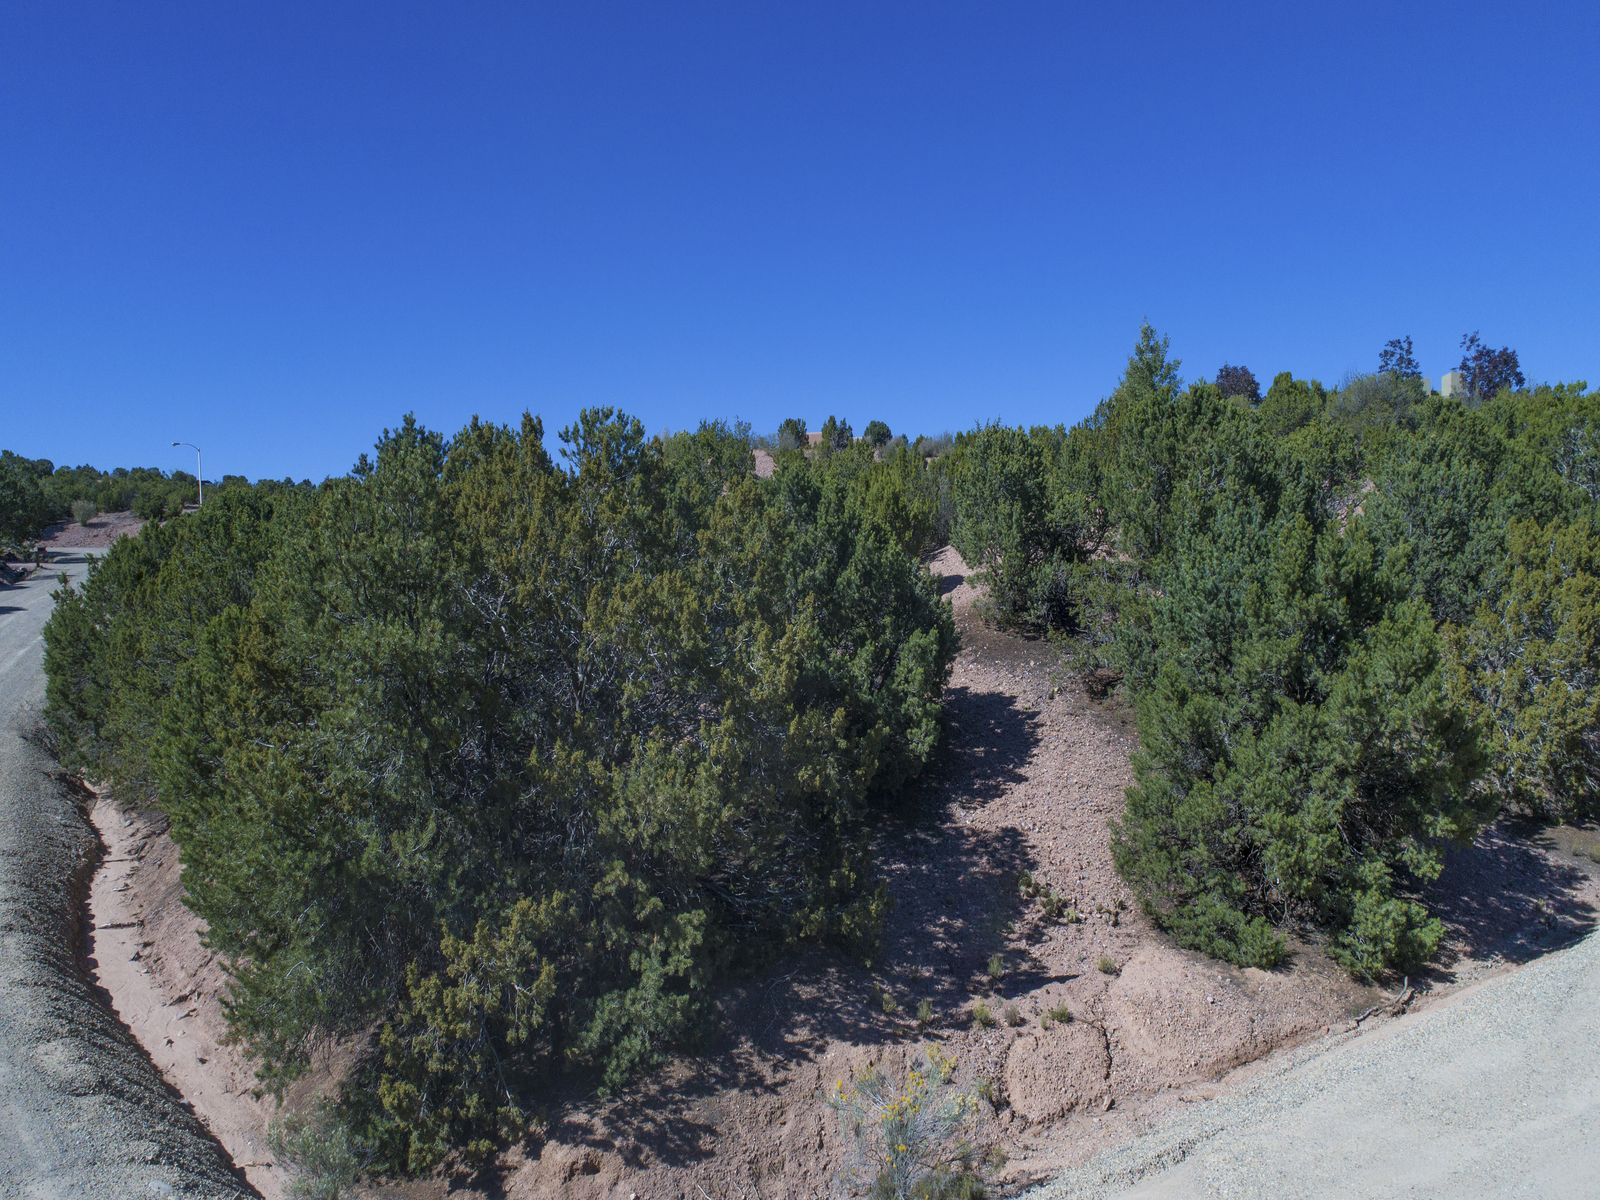 Lot 7, Calle Vistoso, Santa Fe NM Acreage / Lots - Santa Fe Real Estate